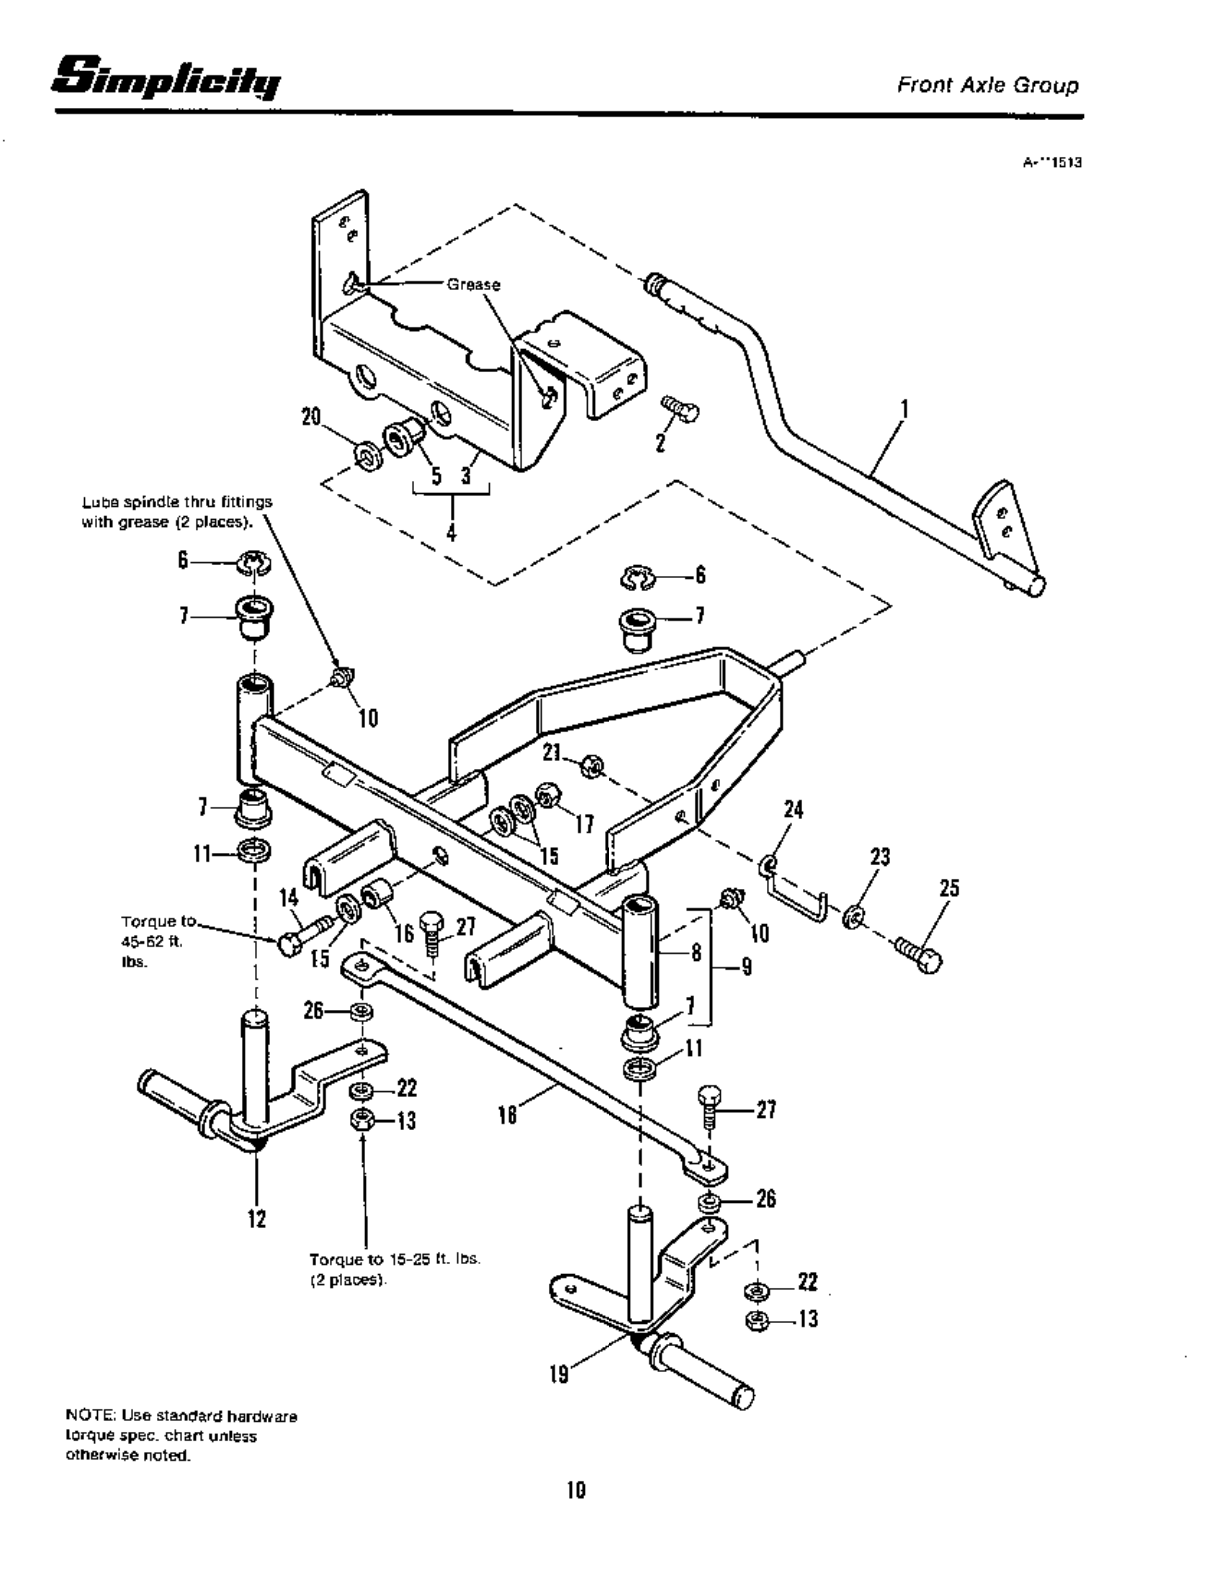 Page 12 of Simplicity Lawn Mower 4200 Series User Guide